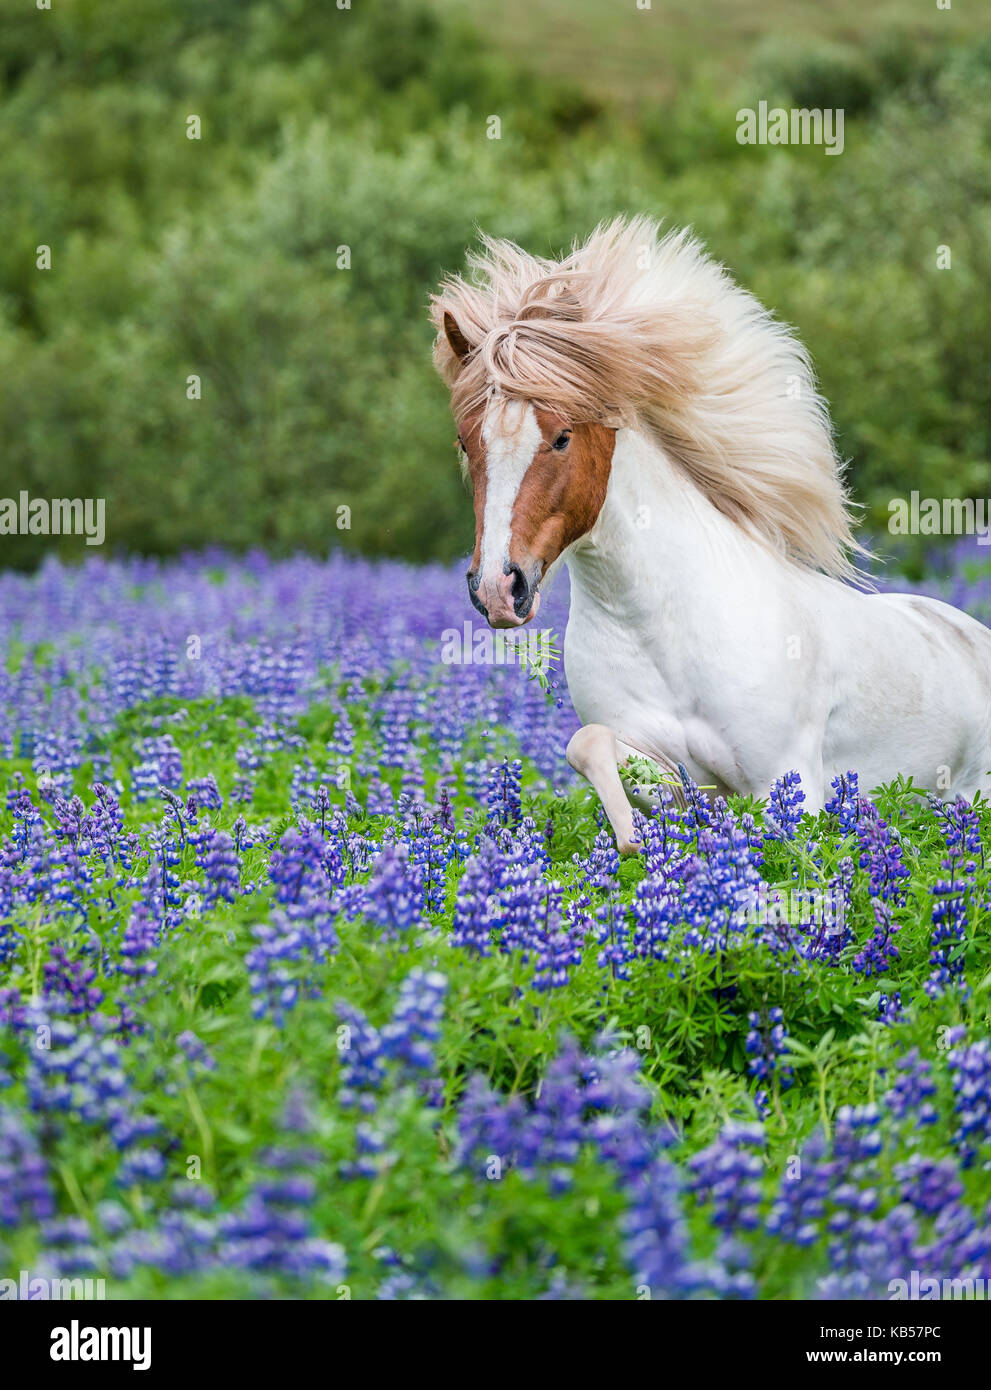 Horse running by lupines, Purebred Icelandic horse in the summertime with blooming lupines, Iceland - Stock Image